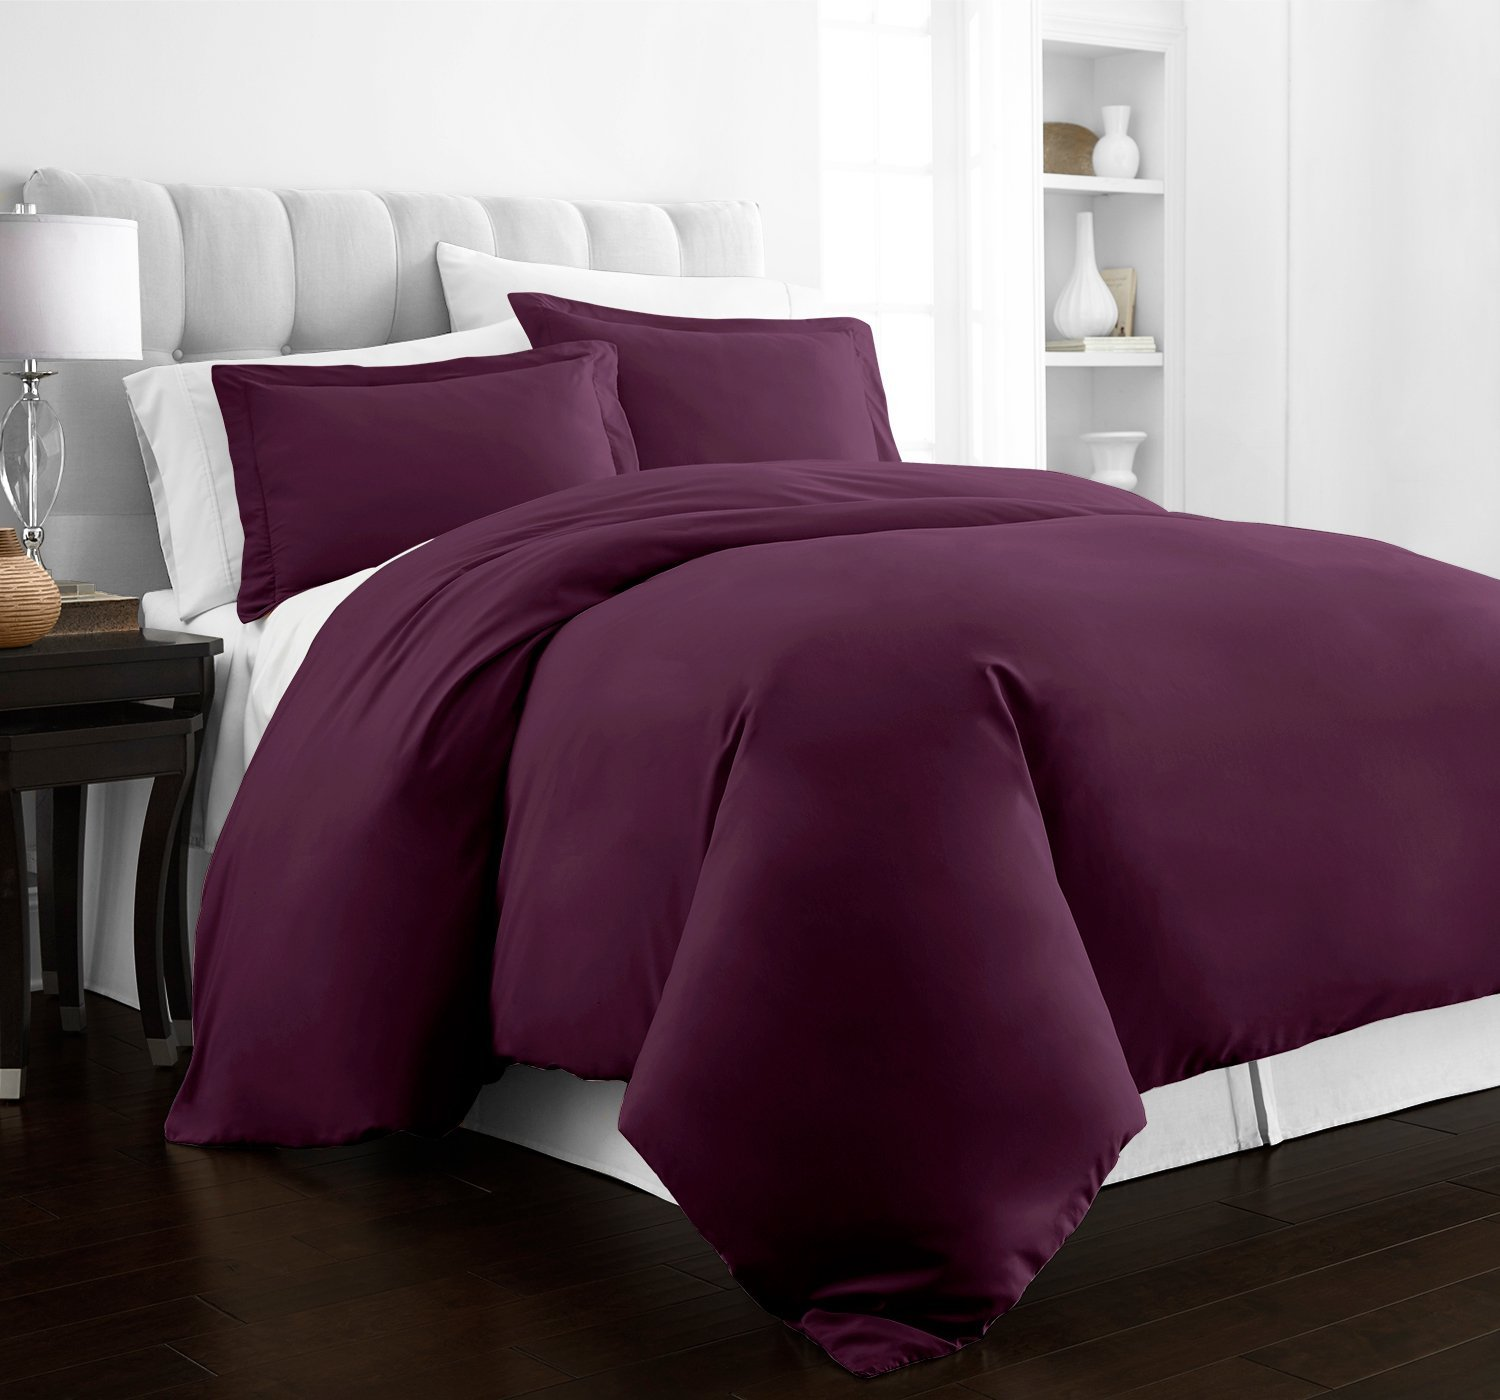 Beckham Hotel Collection Luxury Soft Brushed 2100 Series Microfiber Duvet Cover Set - Hypoallergenic - Twin/TwinXL - Purple